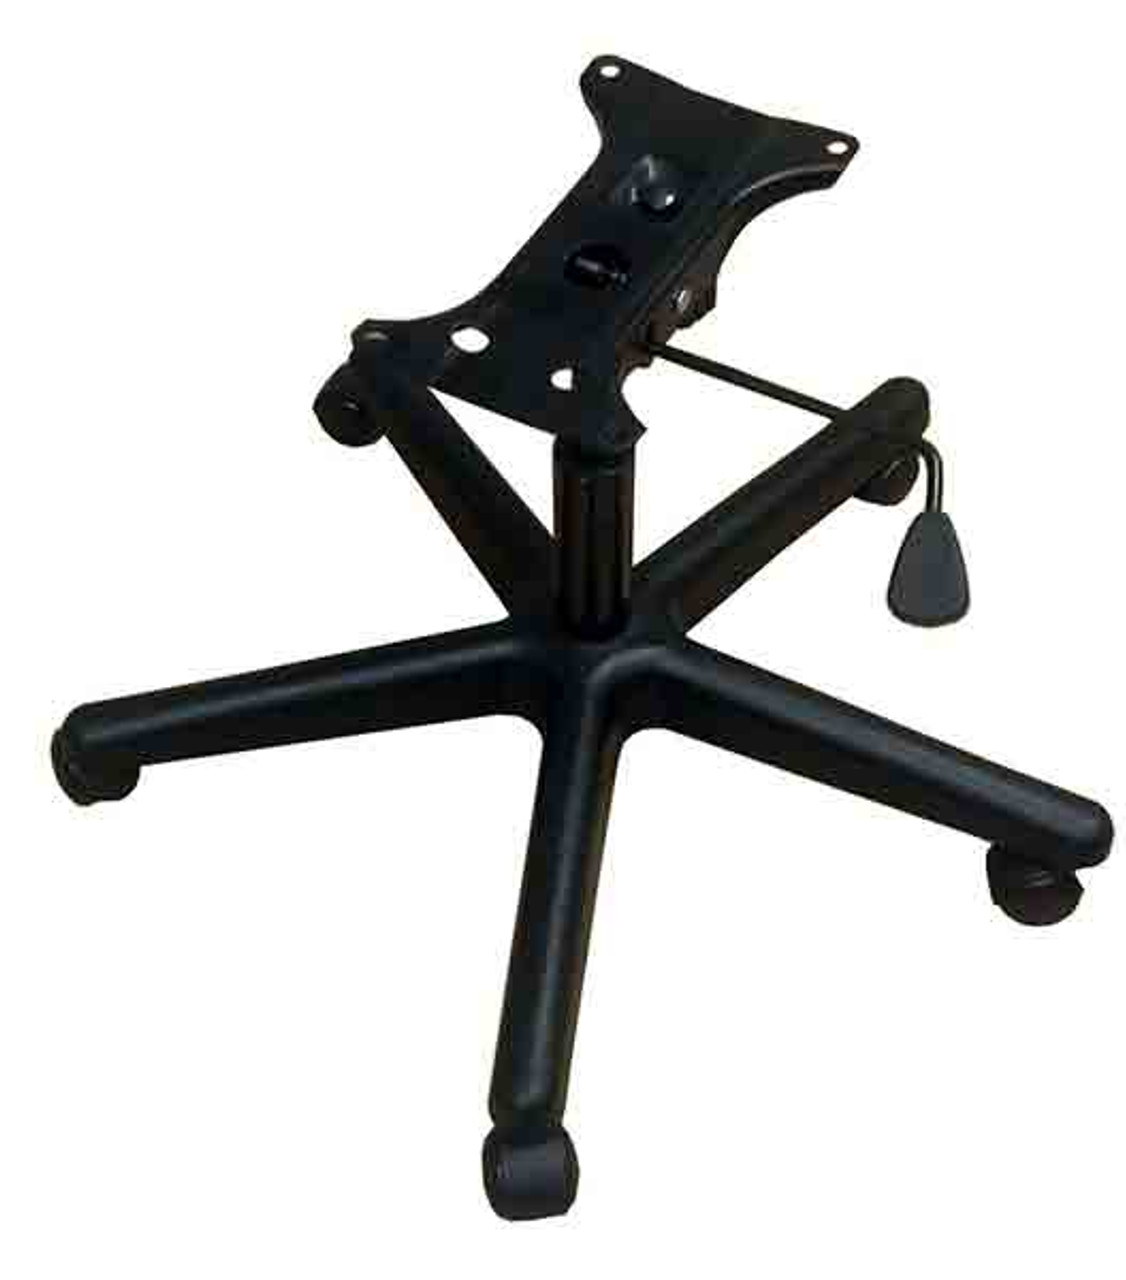 Casters Base Gas Shock And Mechanism Kit For Office Chair